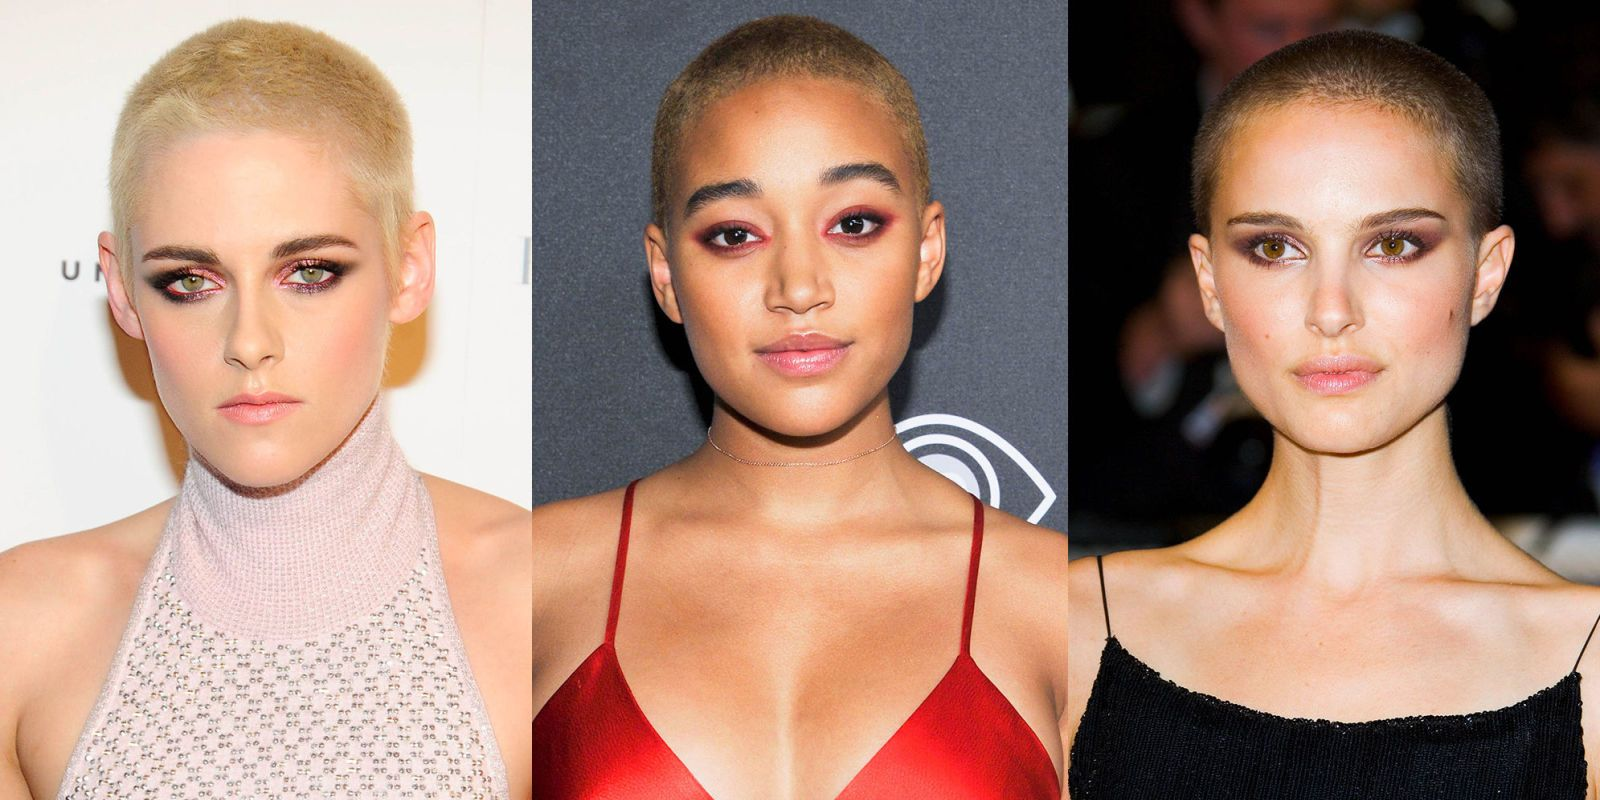 Shaved womens heads